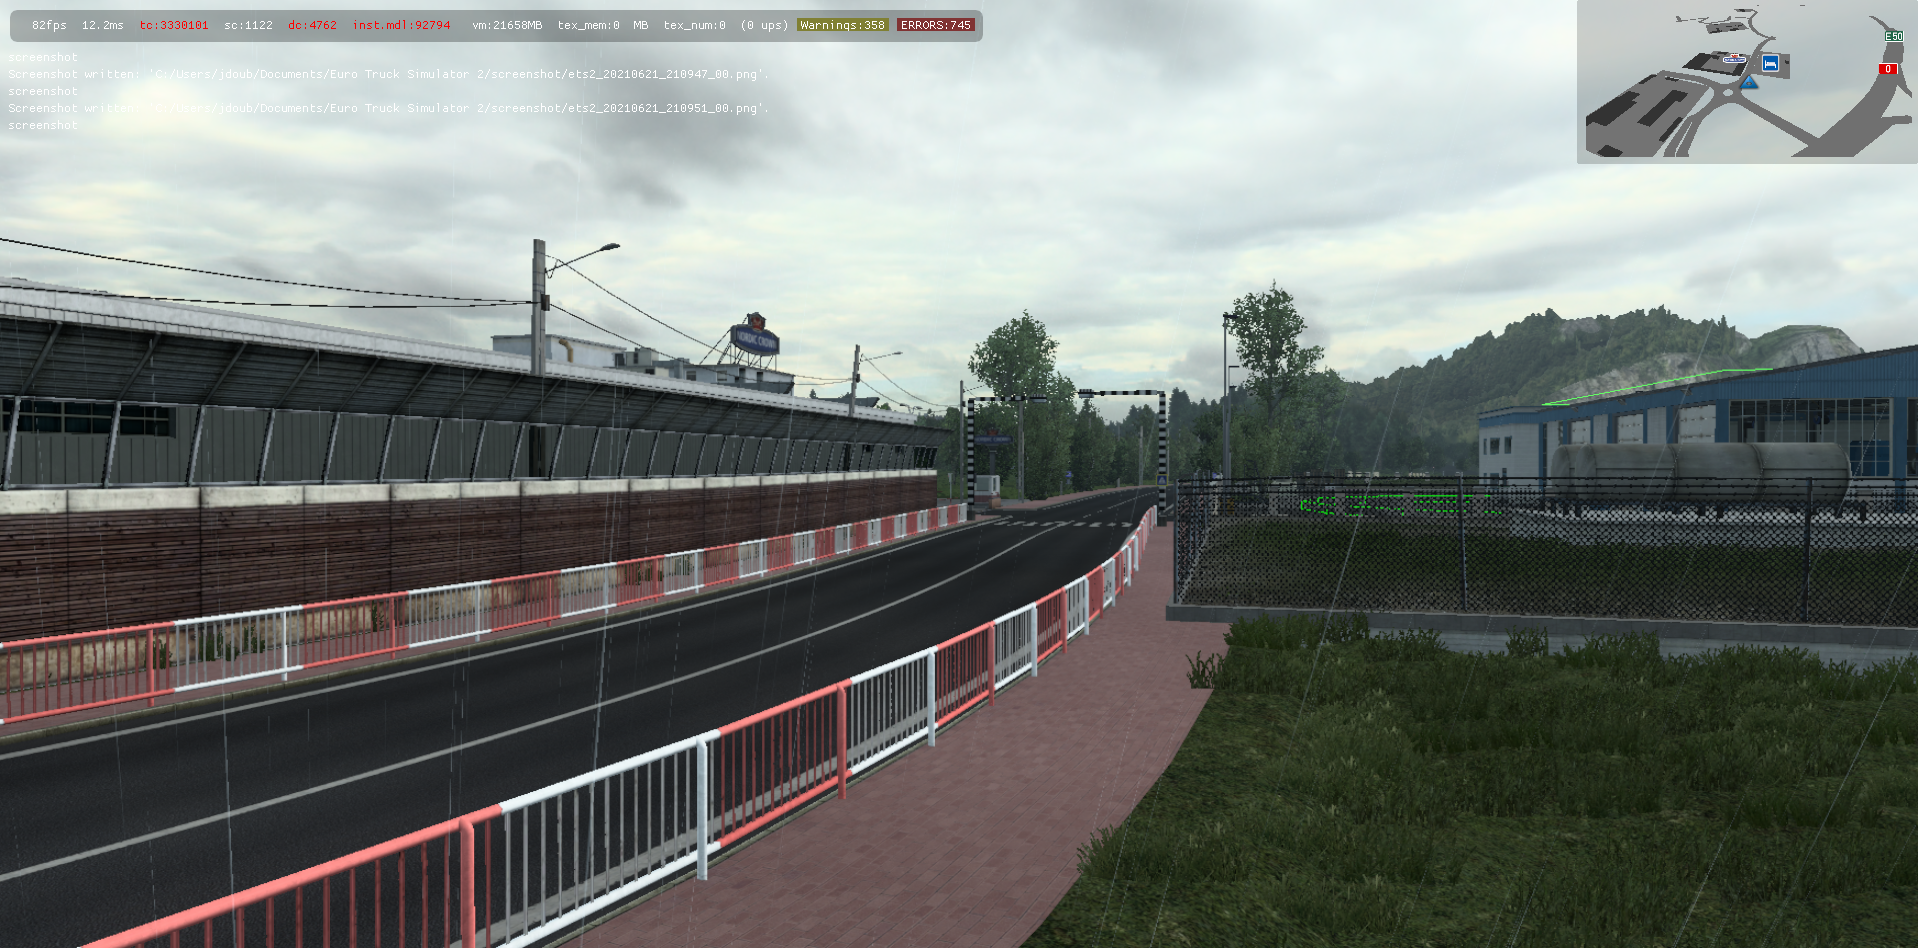 ets2_20210621_210956_00.png